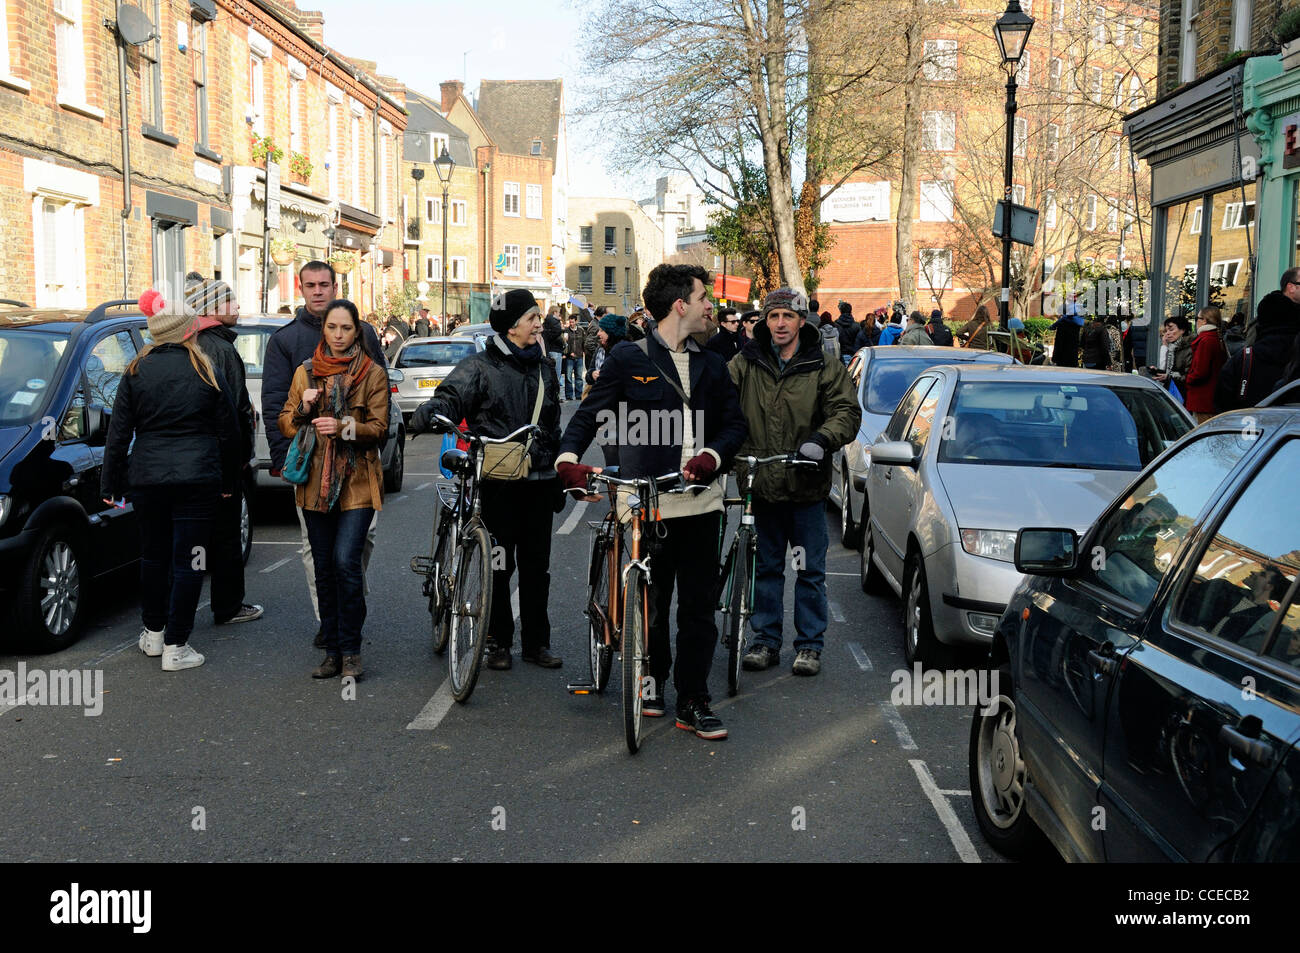 Cyclists pushing their bikes in Columbia Road Flower Market Tower Hamlets London England UK - Stock Image